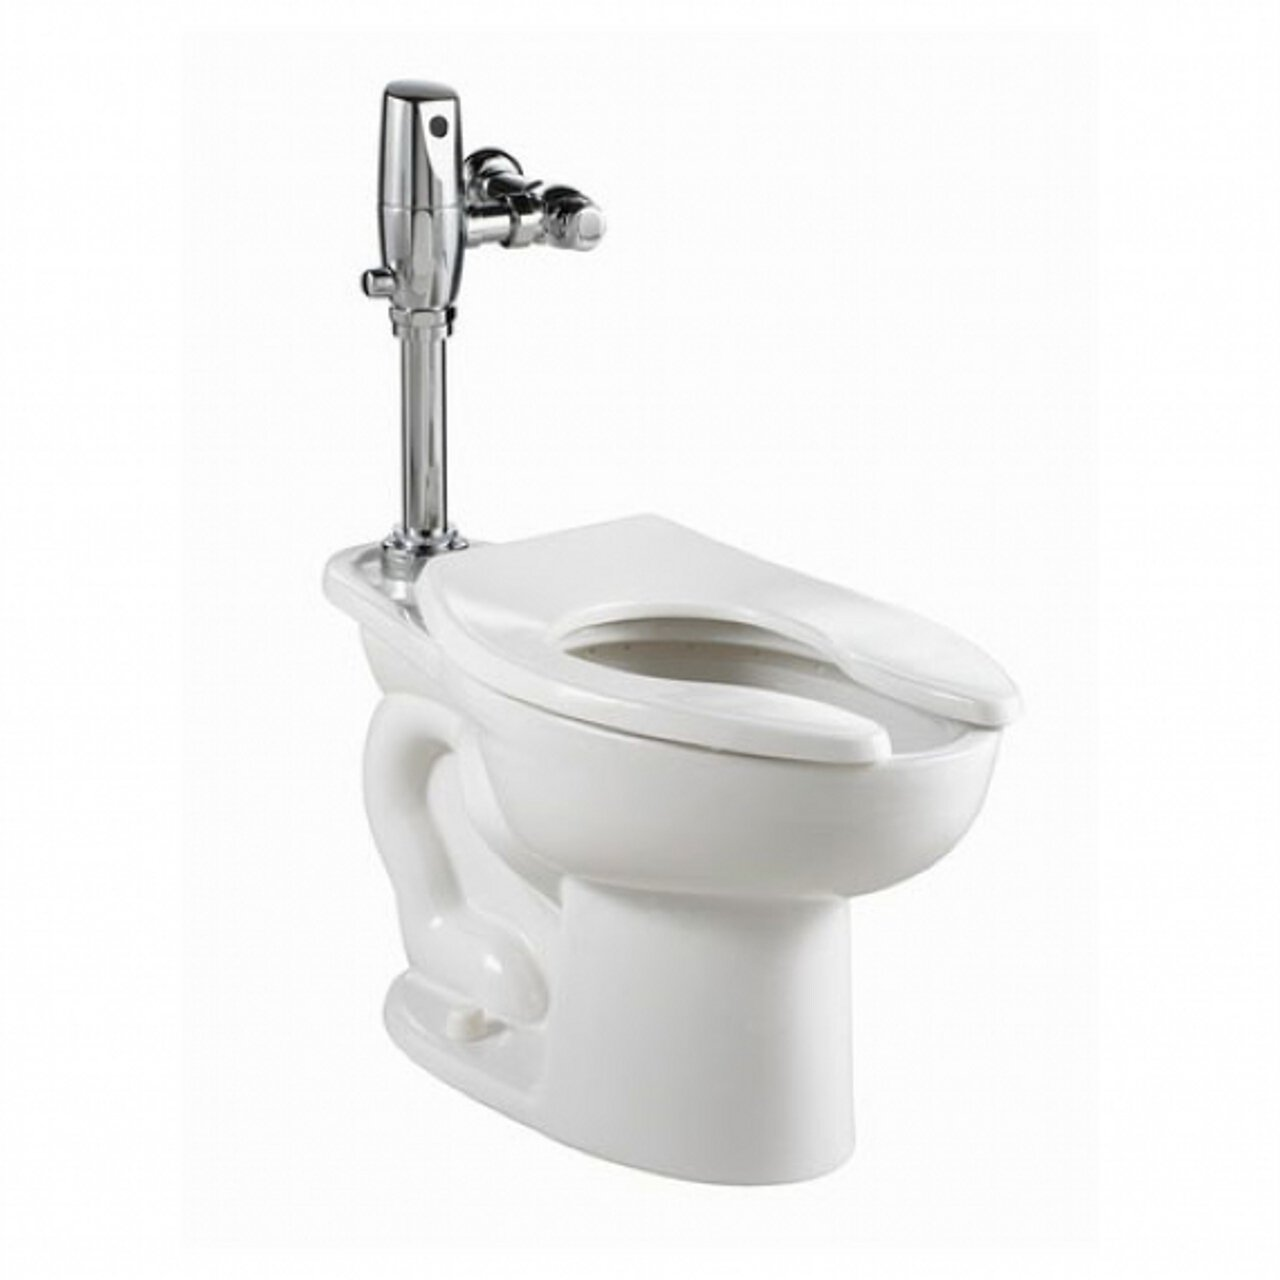 American Standard 2234.001.020 Madera Universal Elongated Toilet Bowl without EverClean, Top Spud, White